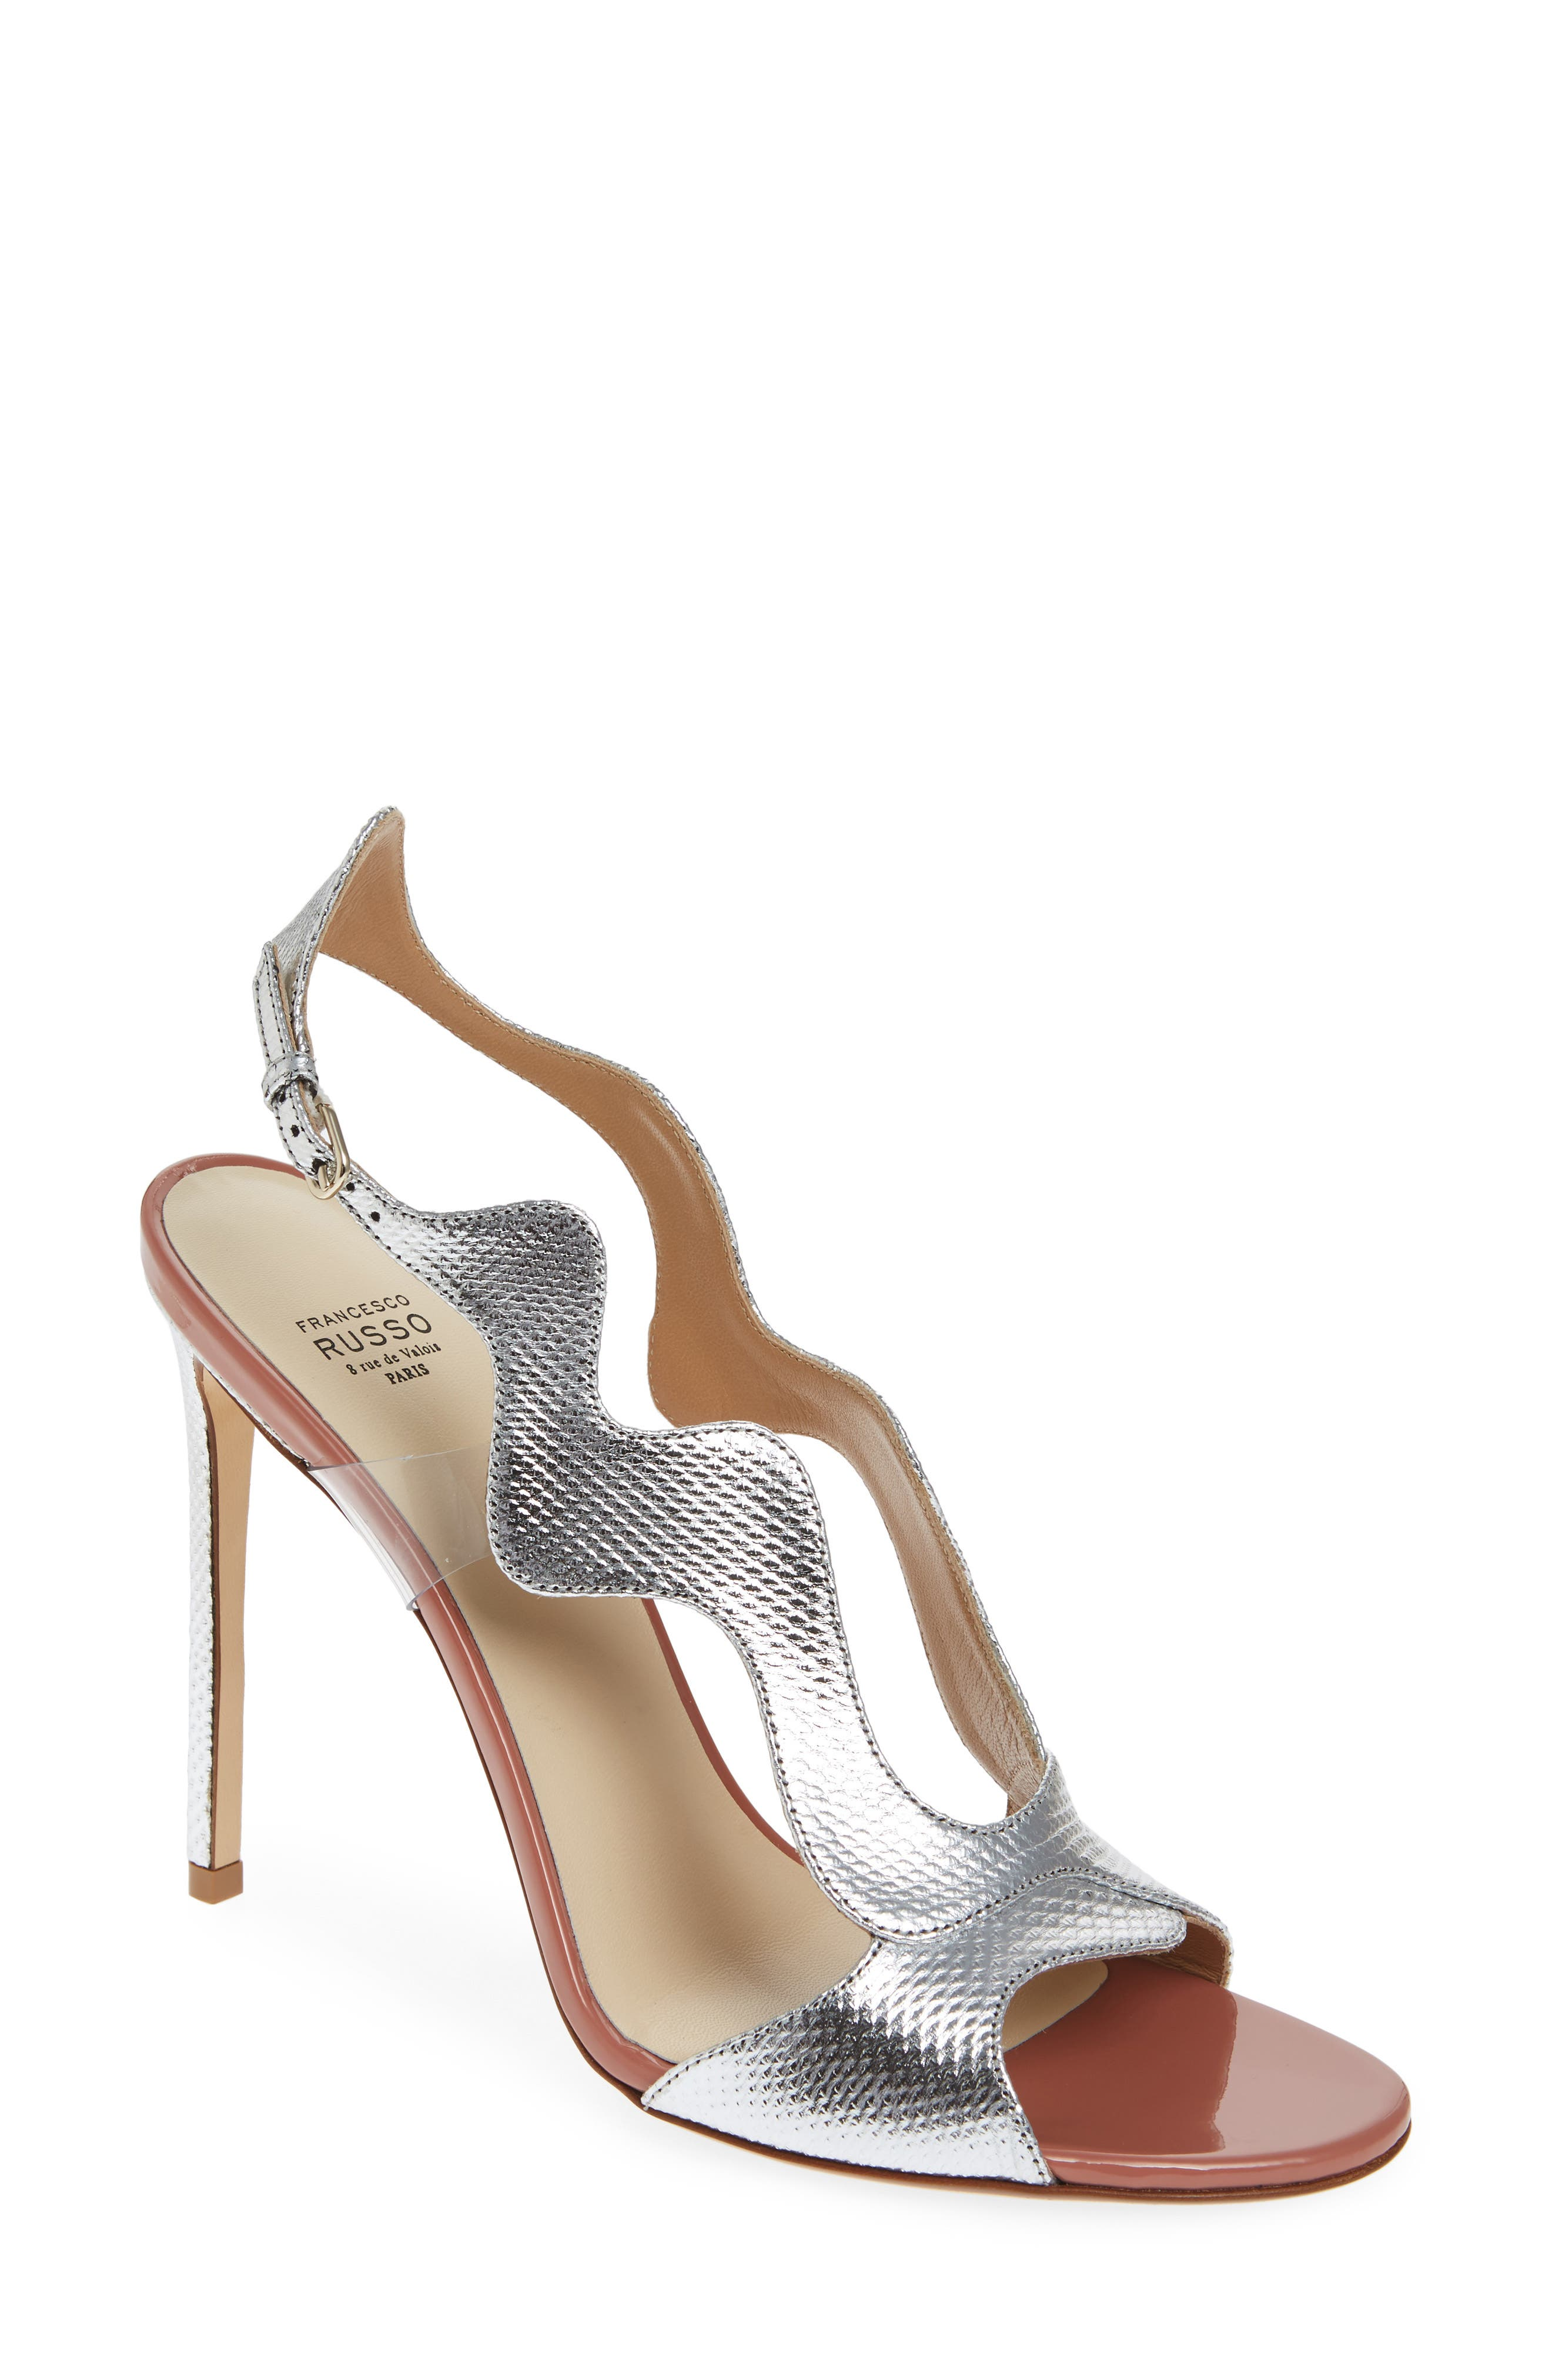 Zigzag Sandal,                         Main,                         color, Silver